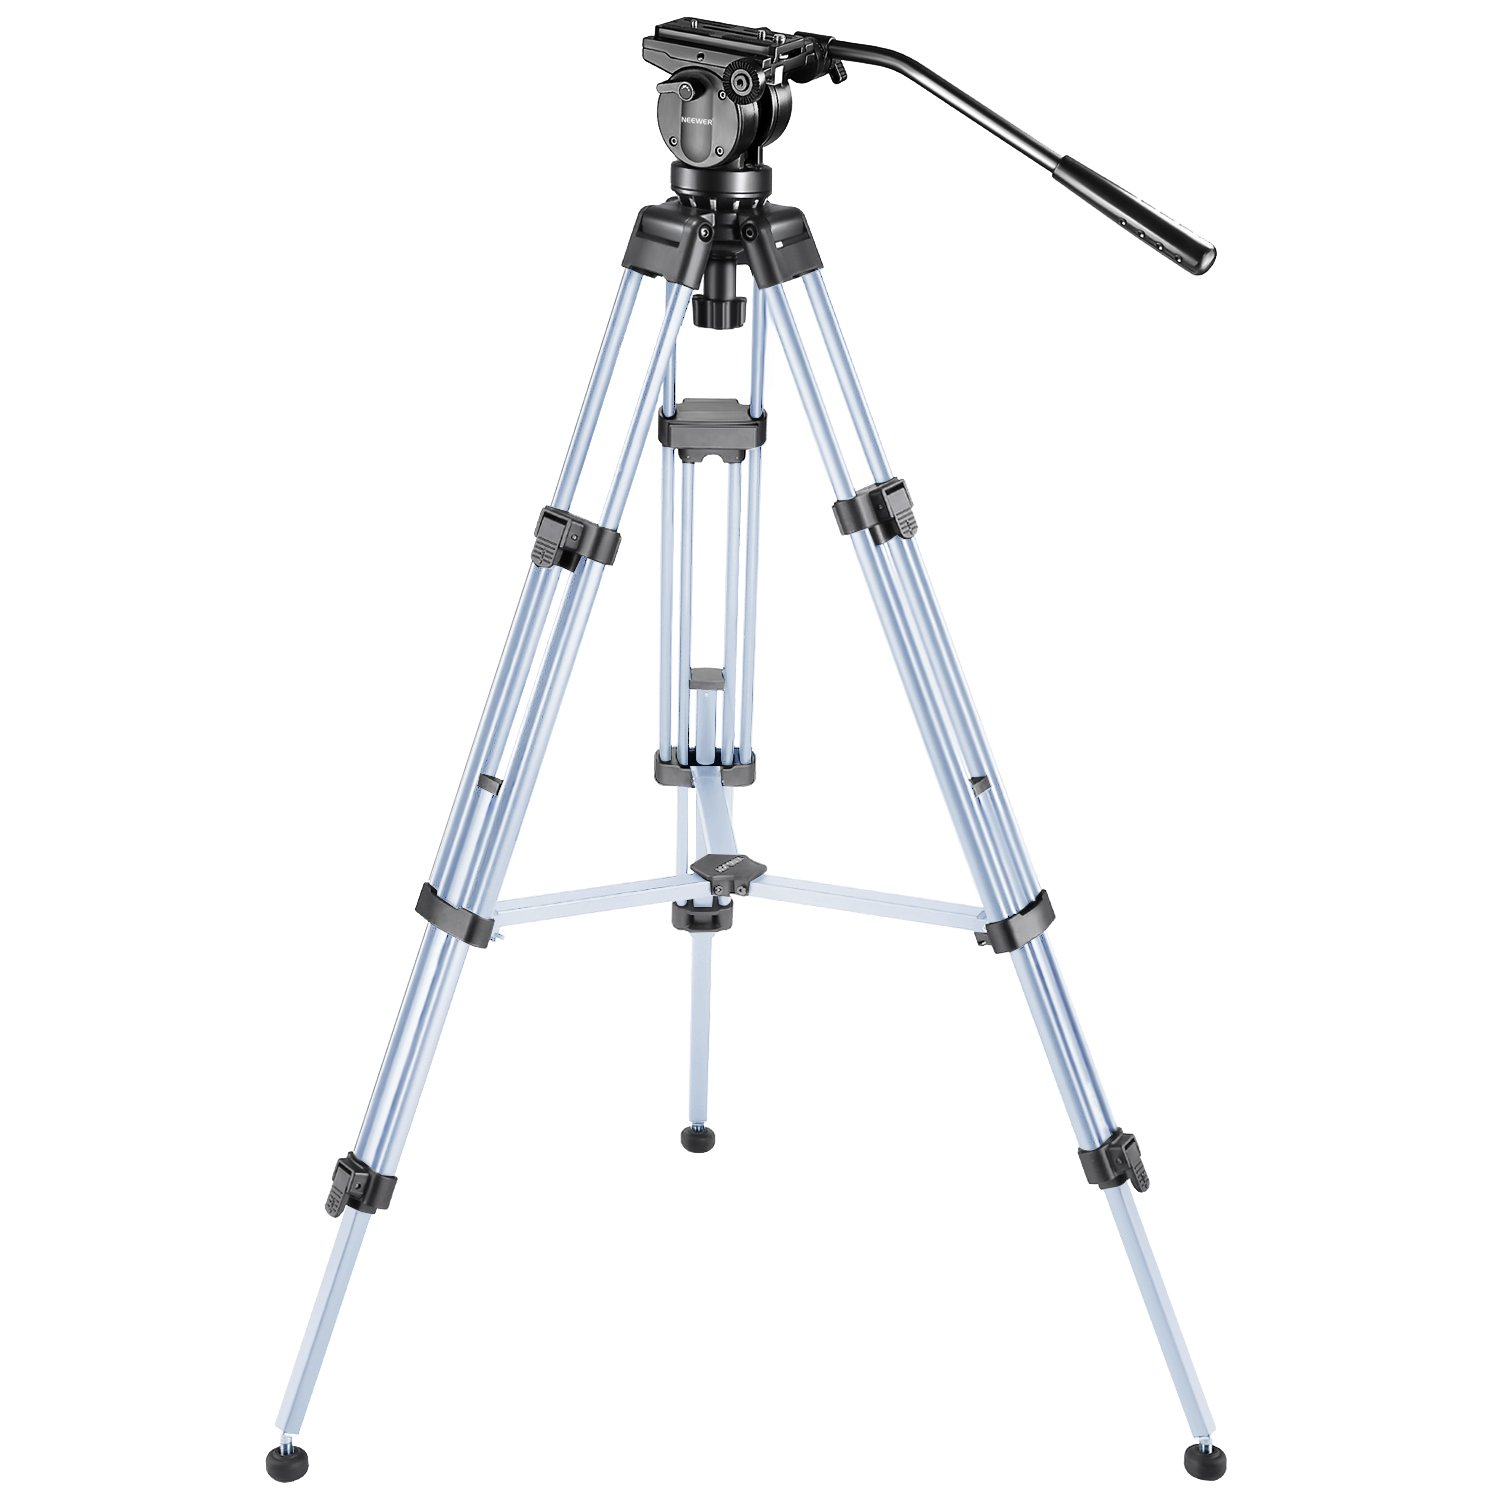 Neewer Pro Video Camera Tripod 61 inches/155 centimeters Aluminum Alloy with 360 Degree Fluid Drag Head, 1/4 and 3/8-inch Quick Shoe Plate and Bubble Level, Load up to 26 pounds/12 kilograms (Silver)